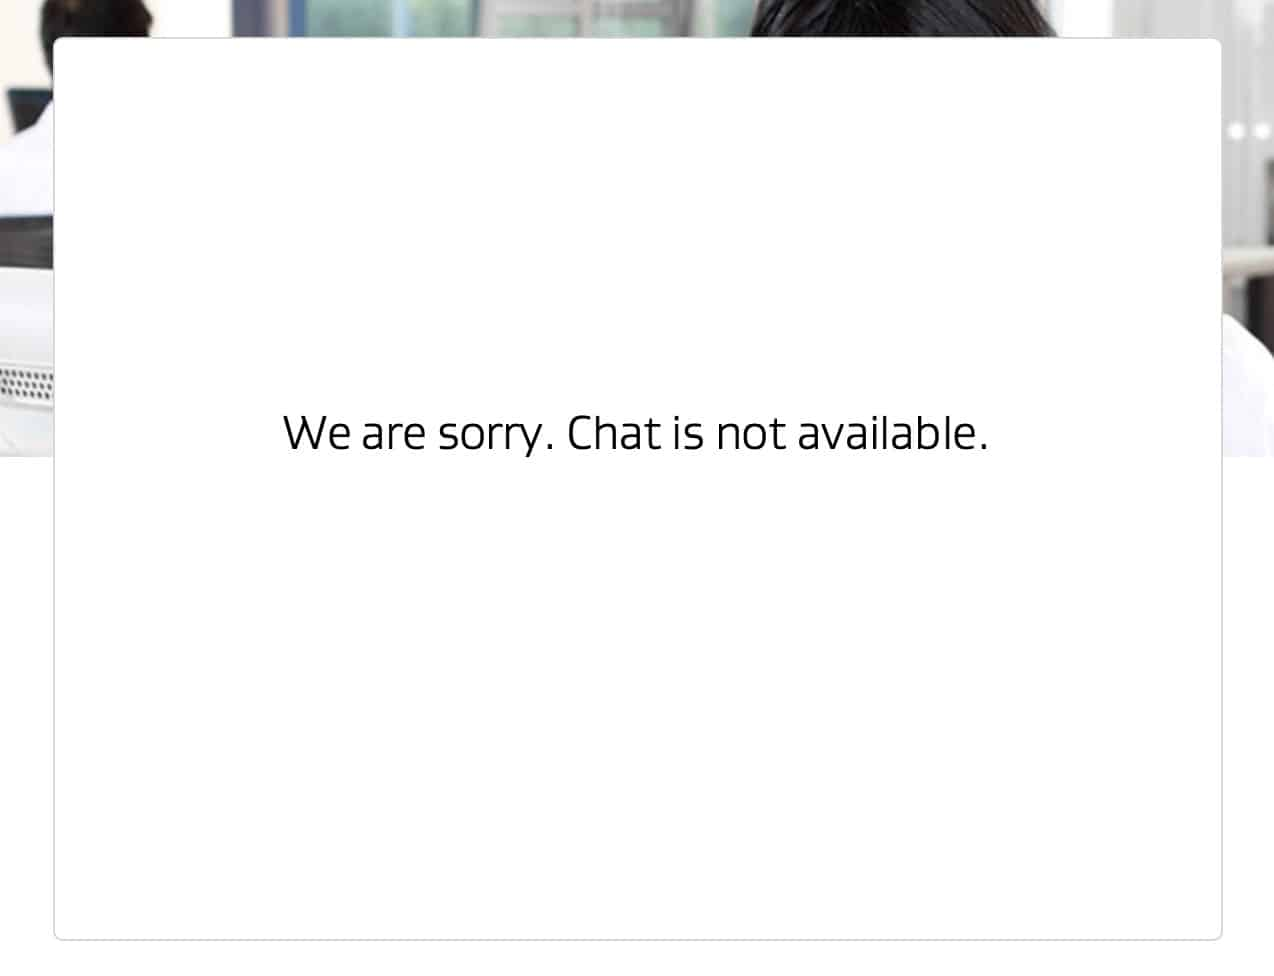 AVG Chat Unavailable